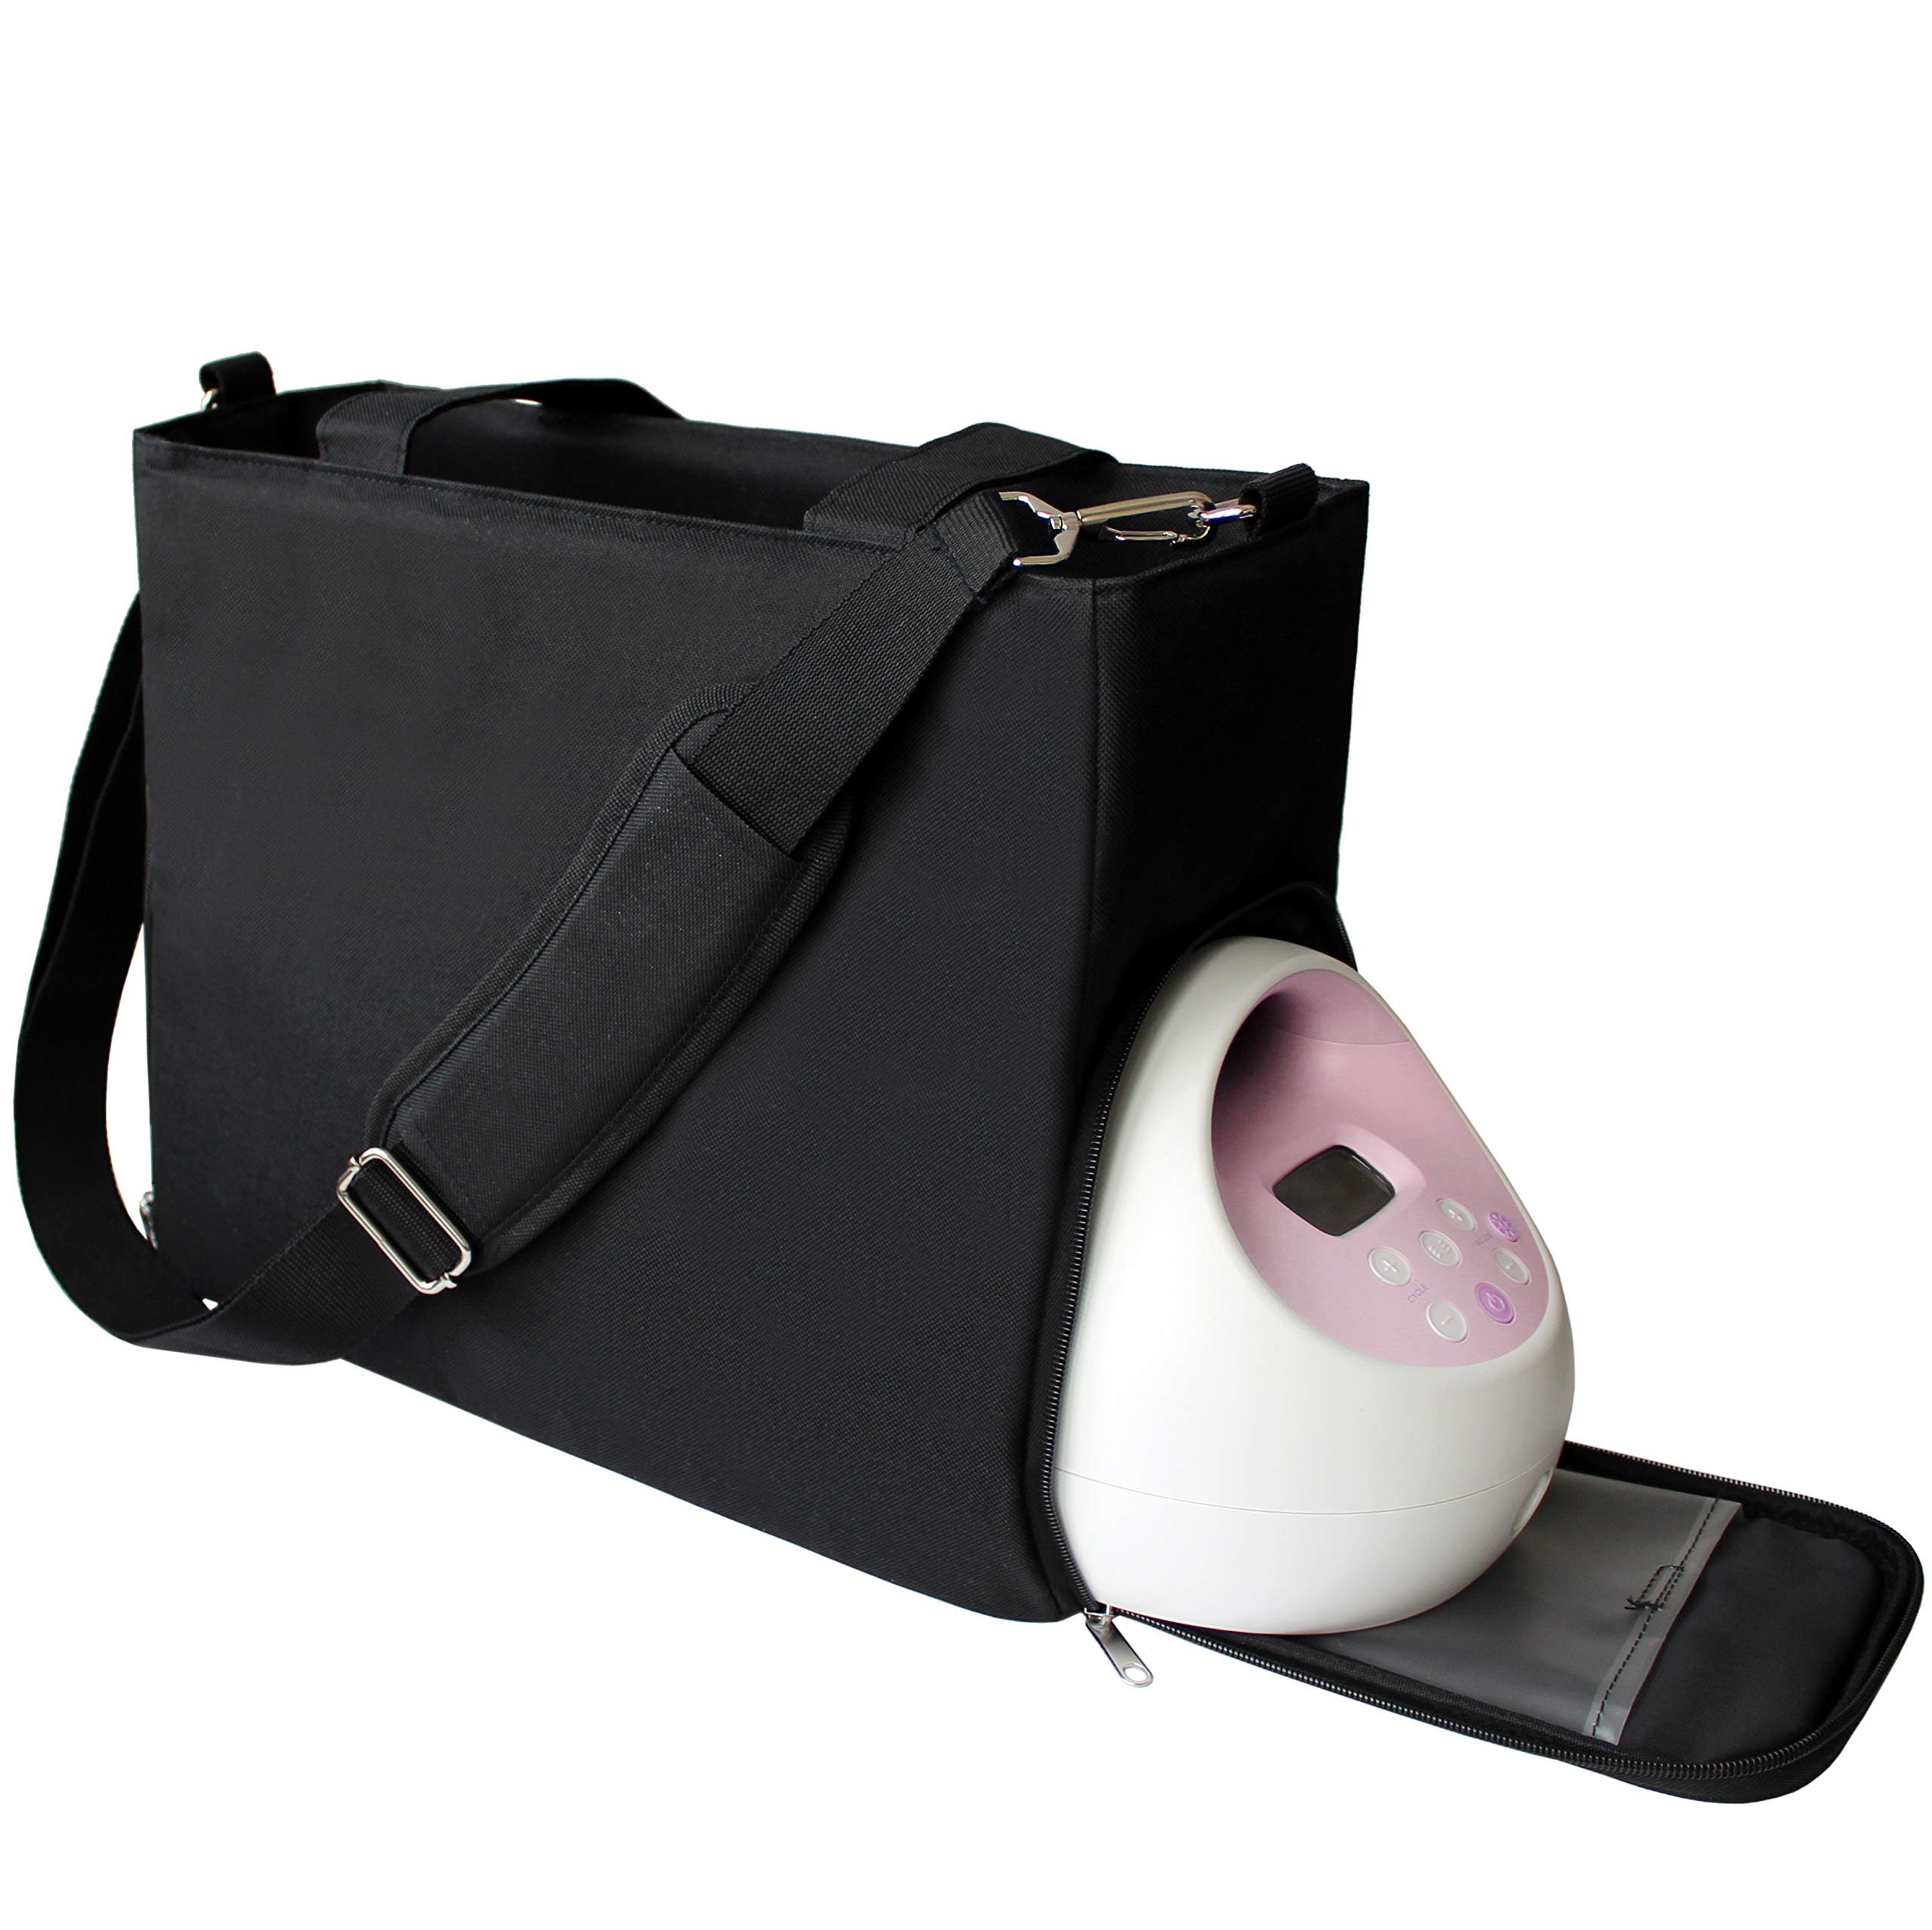 Lil Elephant Breast Pump Bag - Premium Pumping Bag for Spectra, Medela Breastpump | Stylish Tote Breastpump Bags for Moms | Breast Pump Bags and Totes